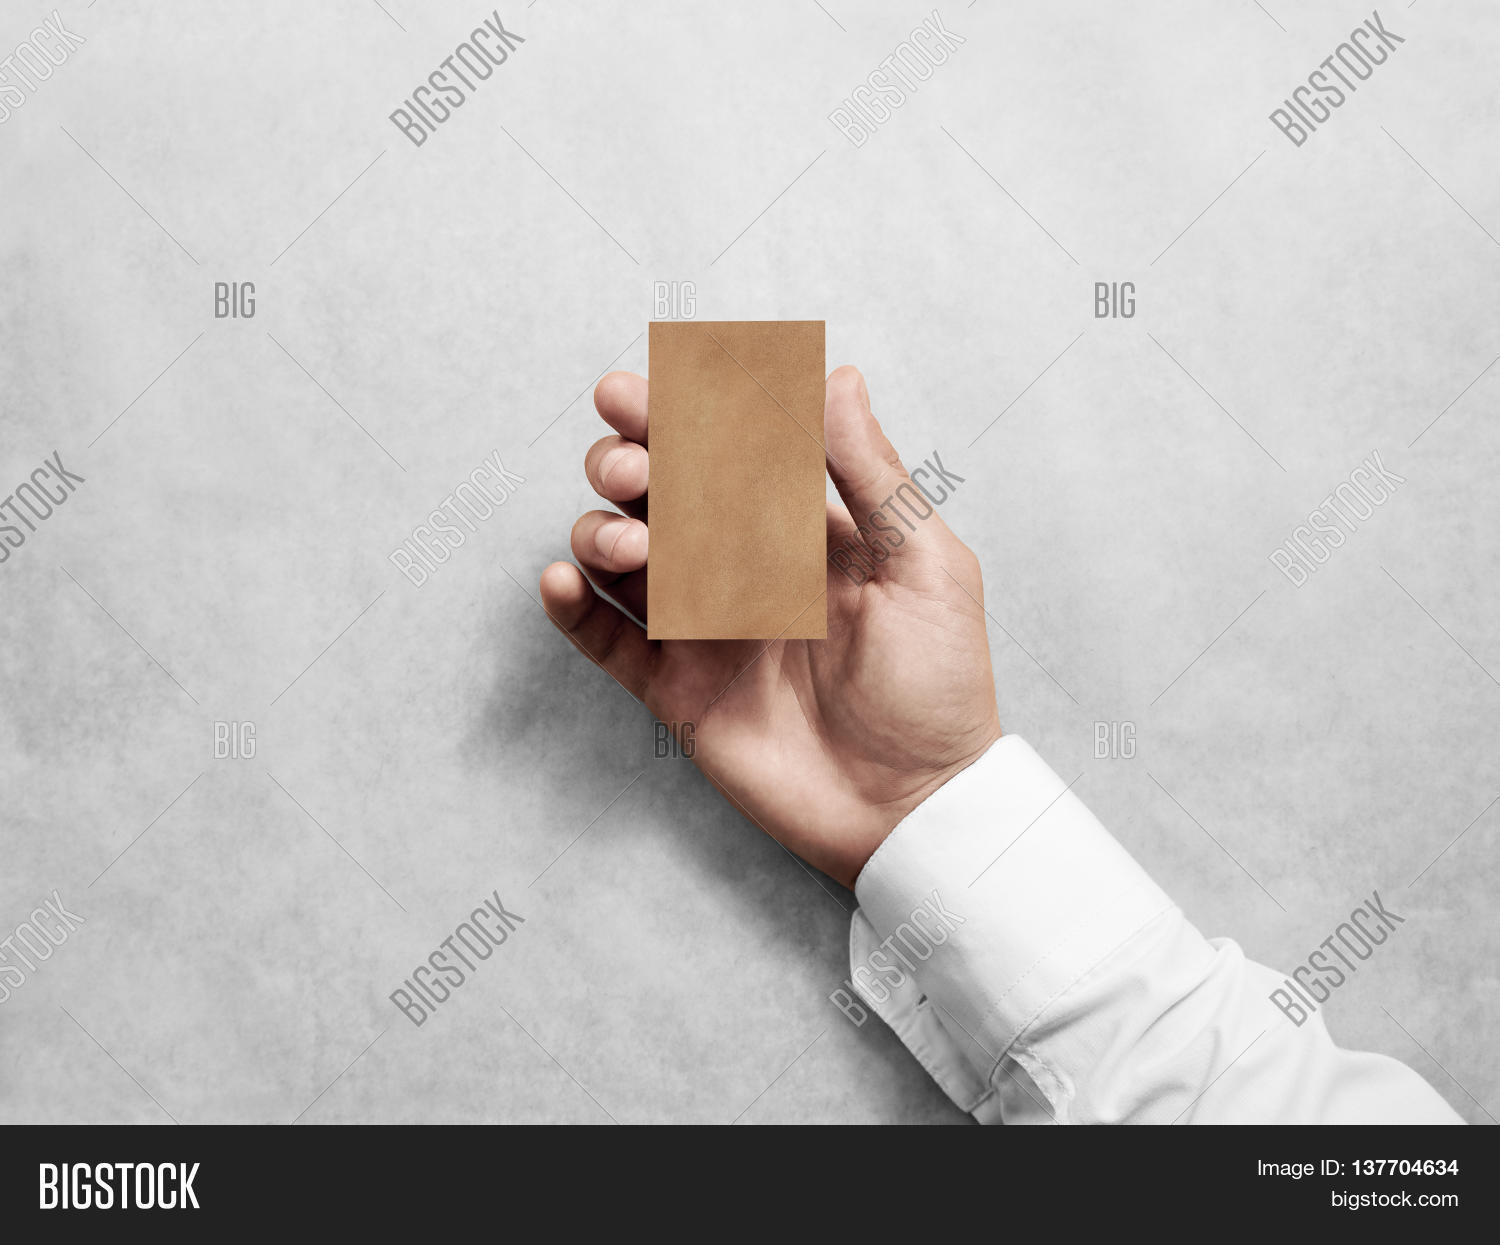 Hand Hold Blank Vertical Craft Image & Photo | Bigstock